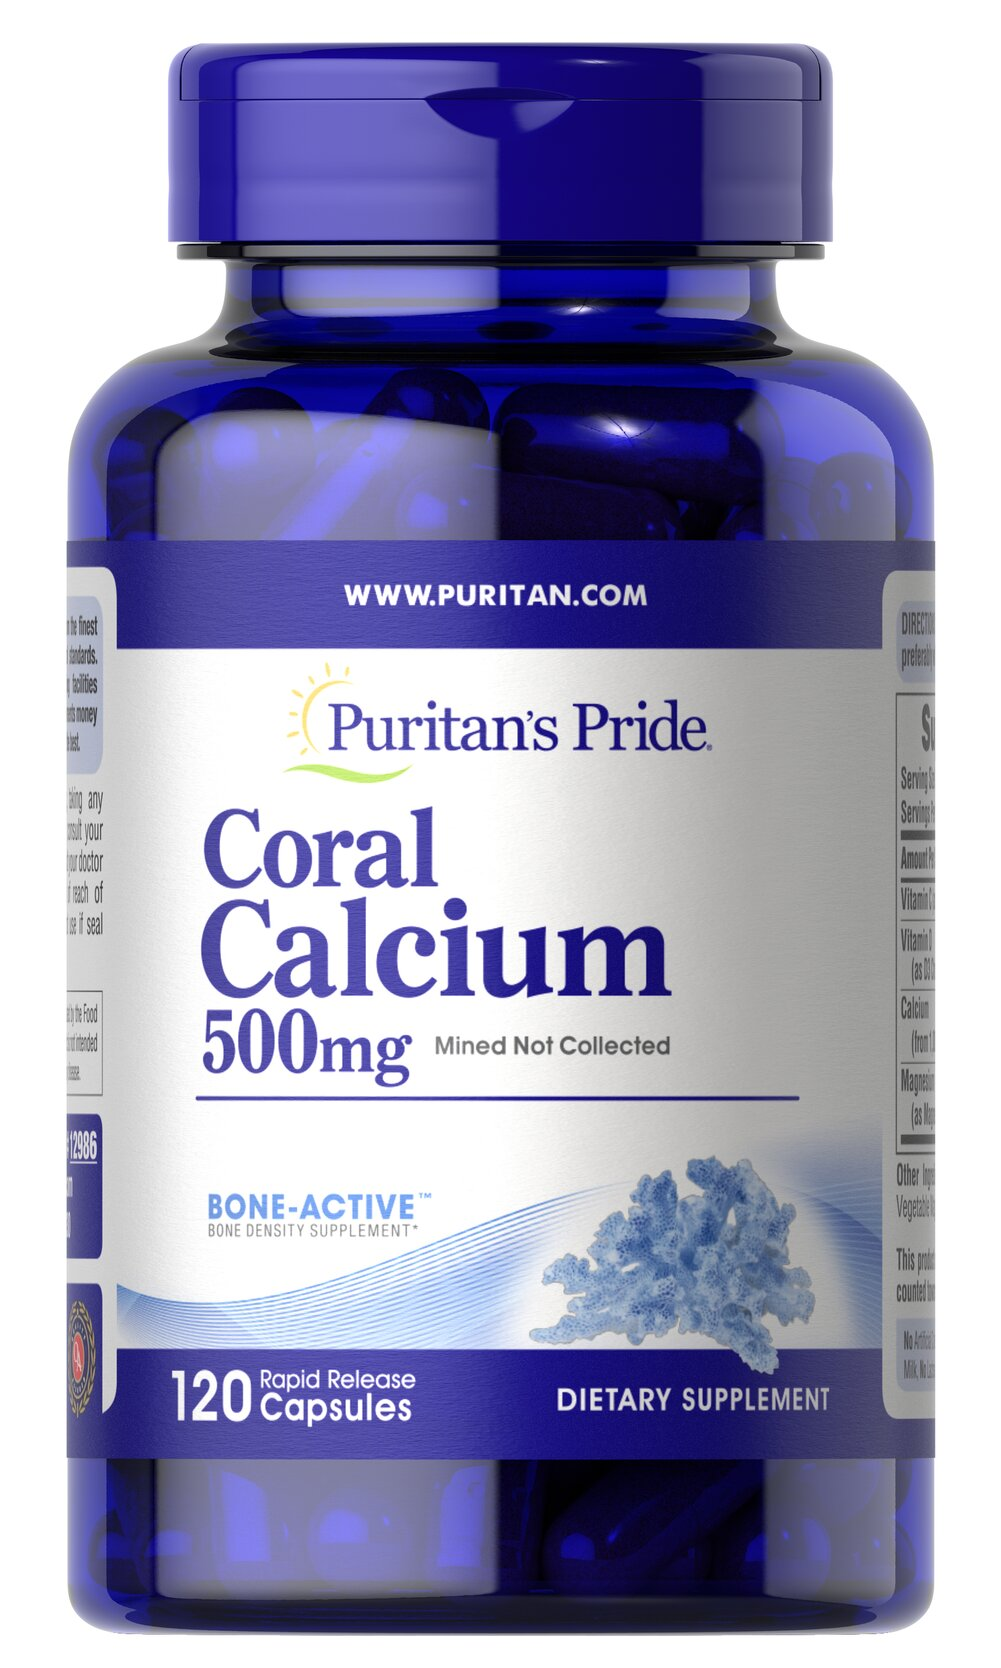 Coral Calcium Complex <p>Today's modern farming and food processing methods can often deplete valuable minerals from our diet. Our Coral Calcium formulation includes Coral Calcium, Magnesium and Vitamin C for bone health, plus Vitamin D to aid in Calcium absorption.** The Coral Calcium in this product is mined, not collected, from an above ground source making it environmentally friendly.</p> 120 Capsules  $16.49